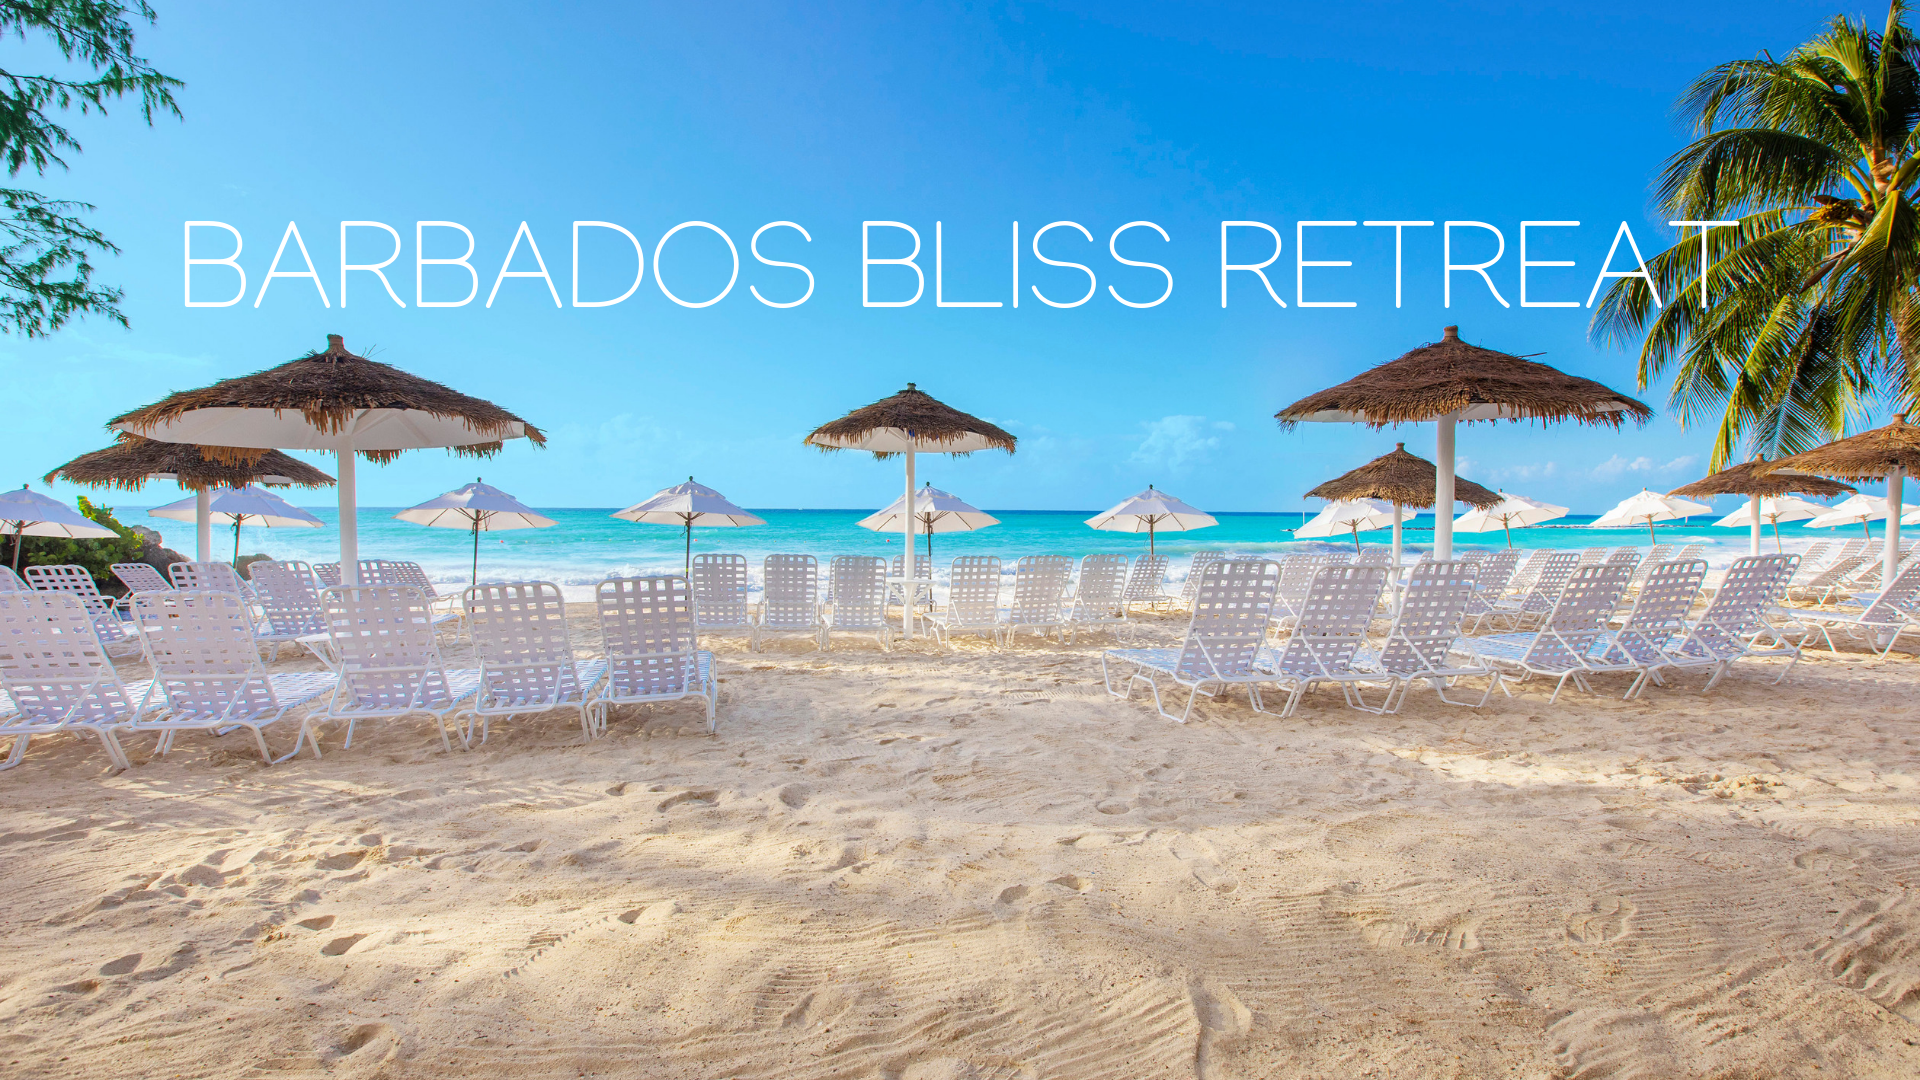 BARBADOS BLISS RETREAT.header.png